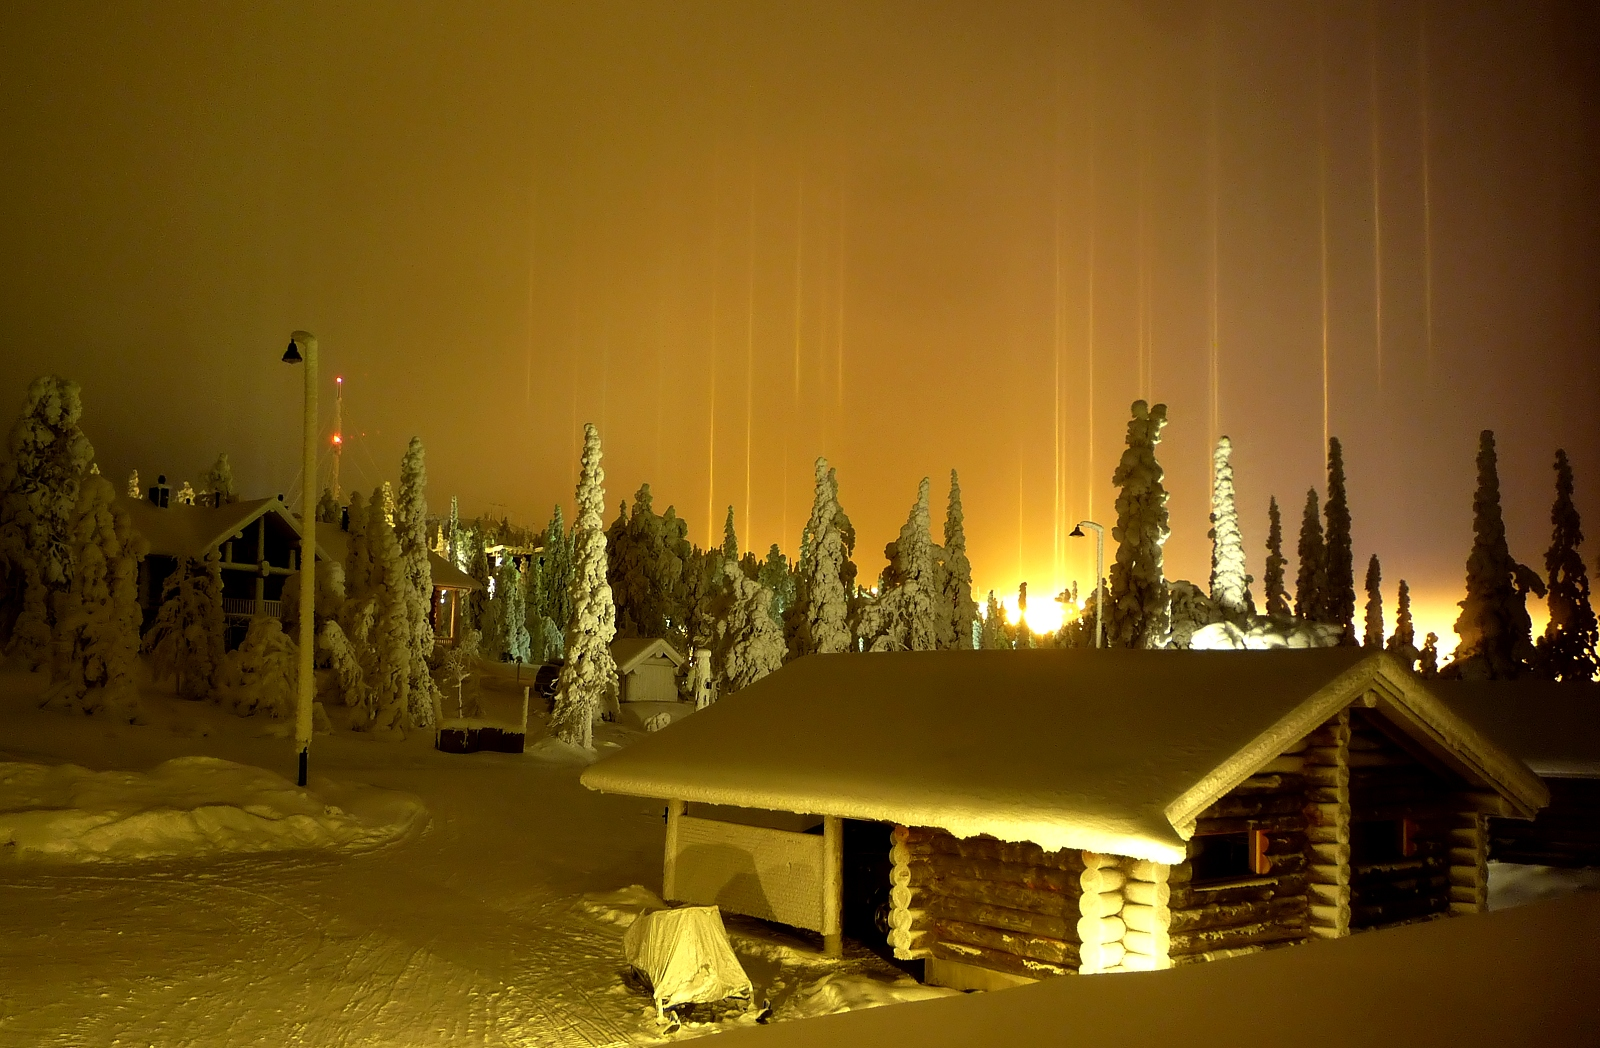 Incredible Natural Phenomenon - Light Pillars in Finland, incredible natural phenomena: light pillars, Light Pillars, Light columns, strange light phenomenon, strange light pillars, amazing light pillars, best light pillars photo, amazing photo of light column, Incredible Natural Phenomenon - Light Pillars in Finland